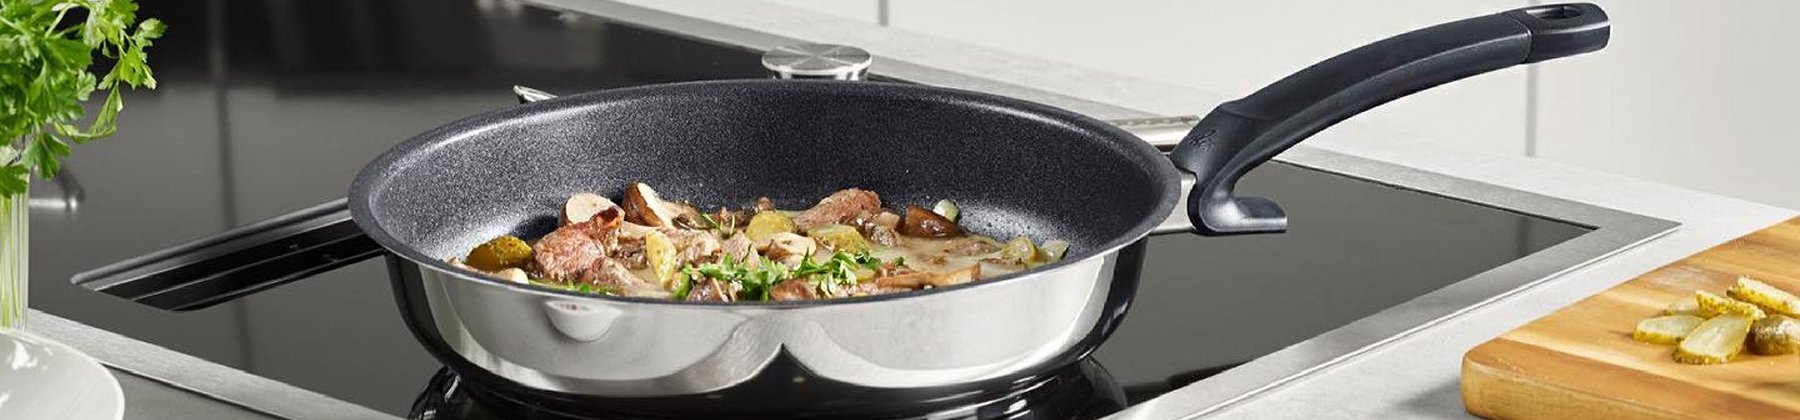 Photo of Fissler nonstick fry pan cooking potatoes on a stove.